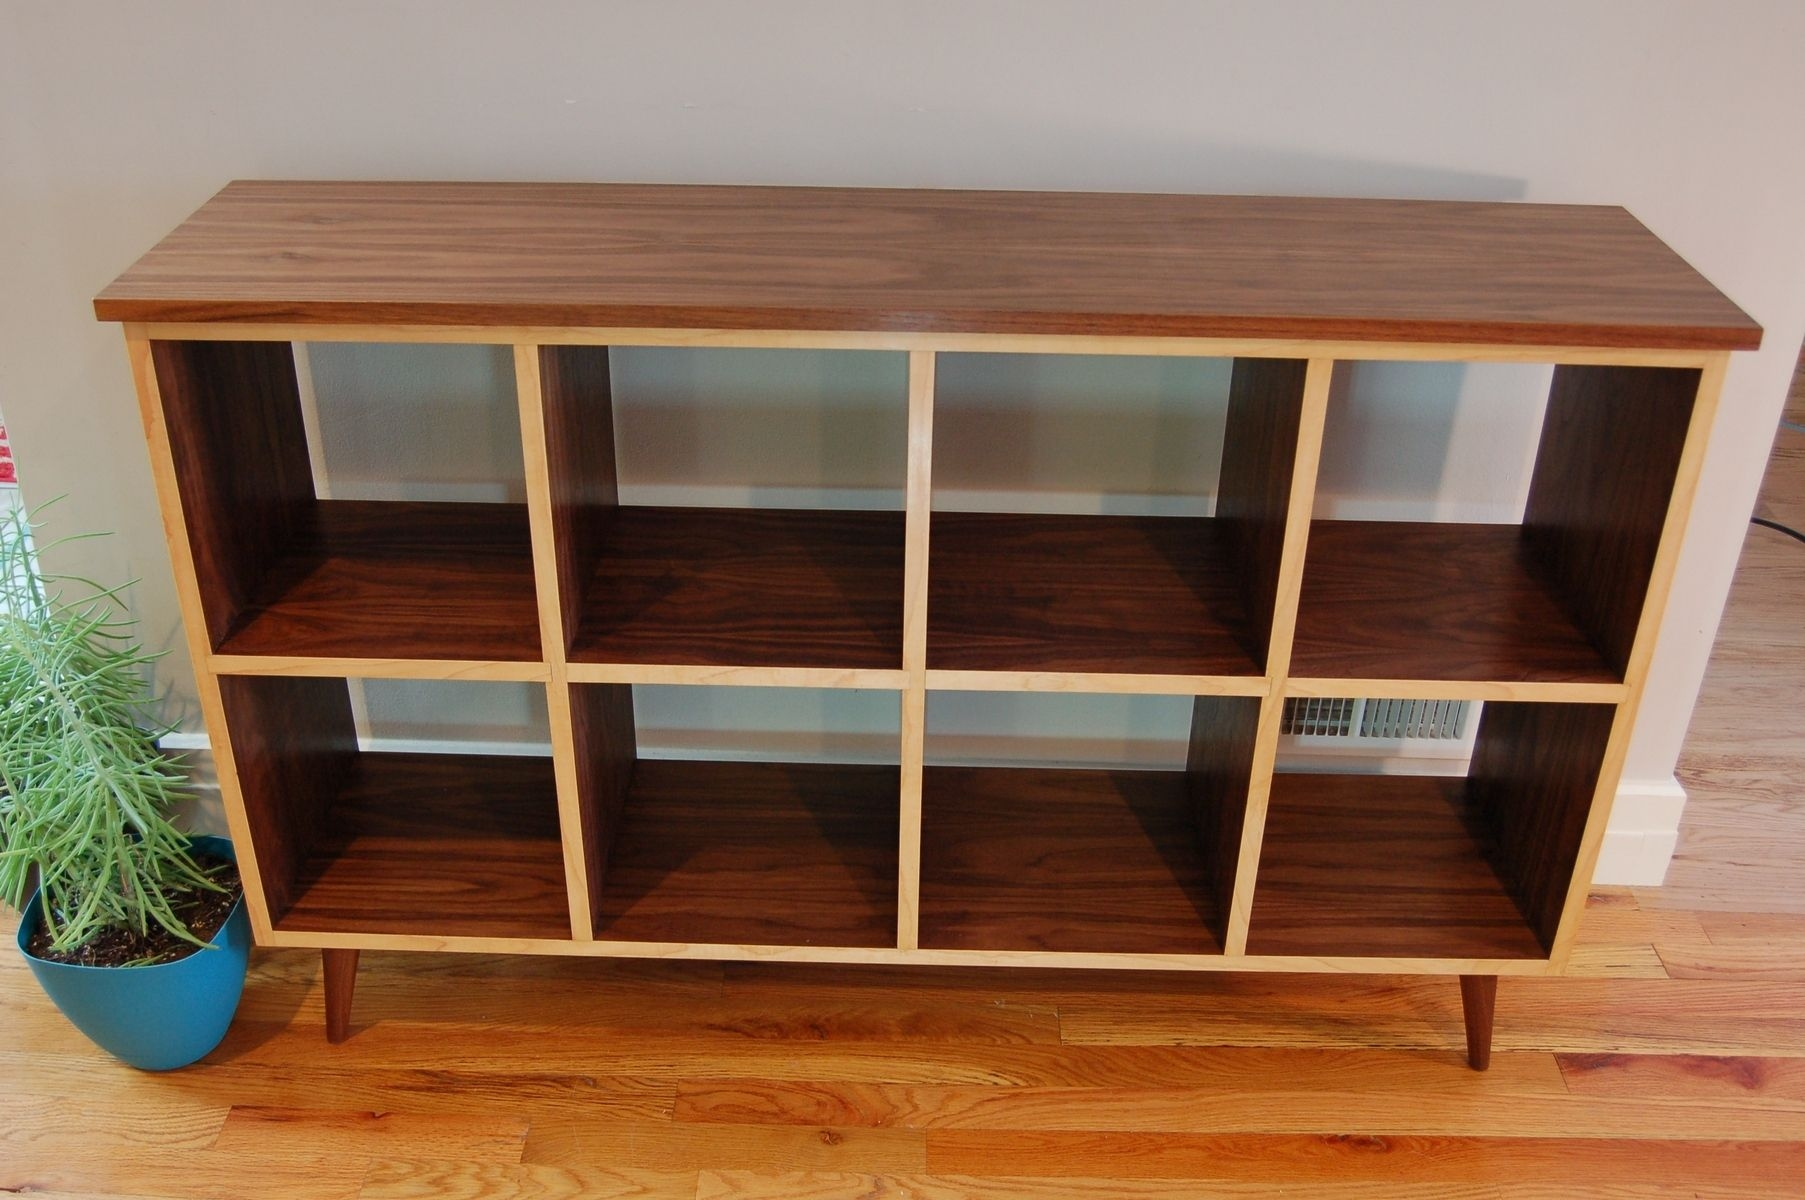 Handmade Furnishings Walnut Bookcase With Maple Edge Banding Intended For Handmade Bookcase (#8 of 15)